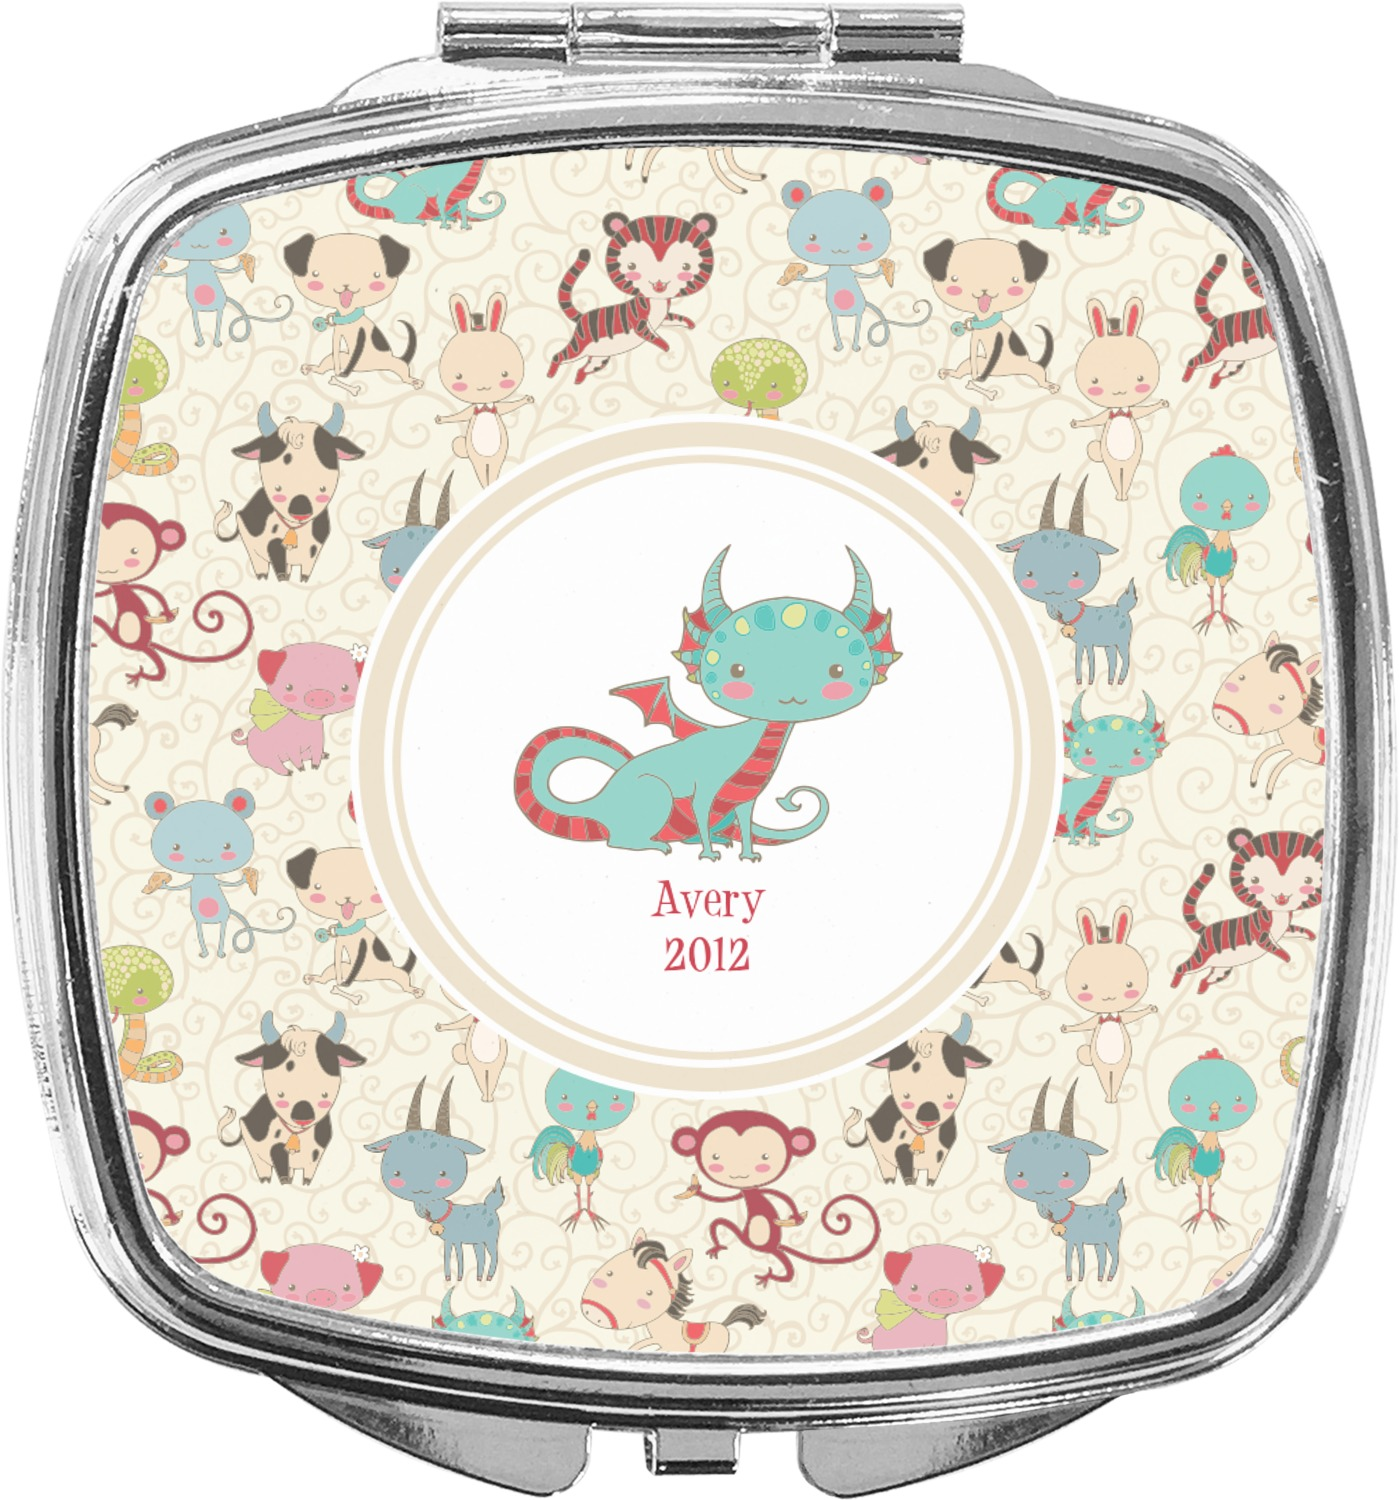 dbd343894835 Chinese Zodiac Compact Makeup Mirror (Personalized)